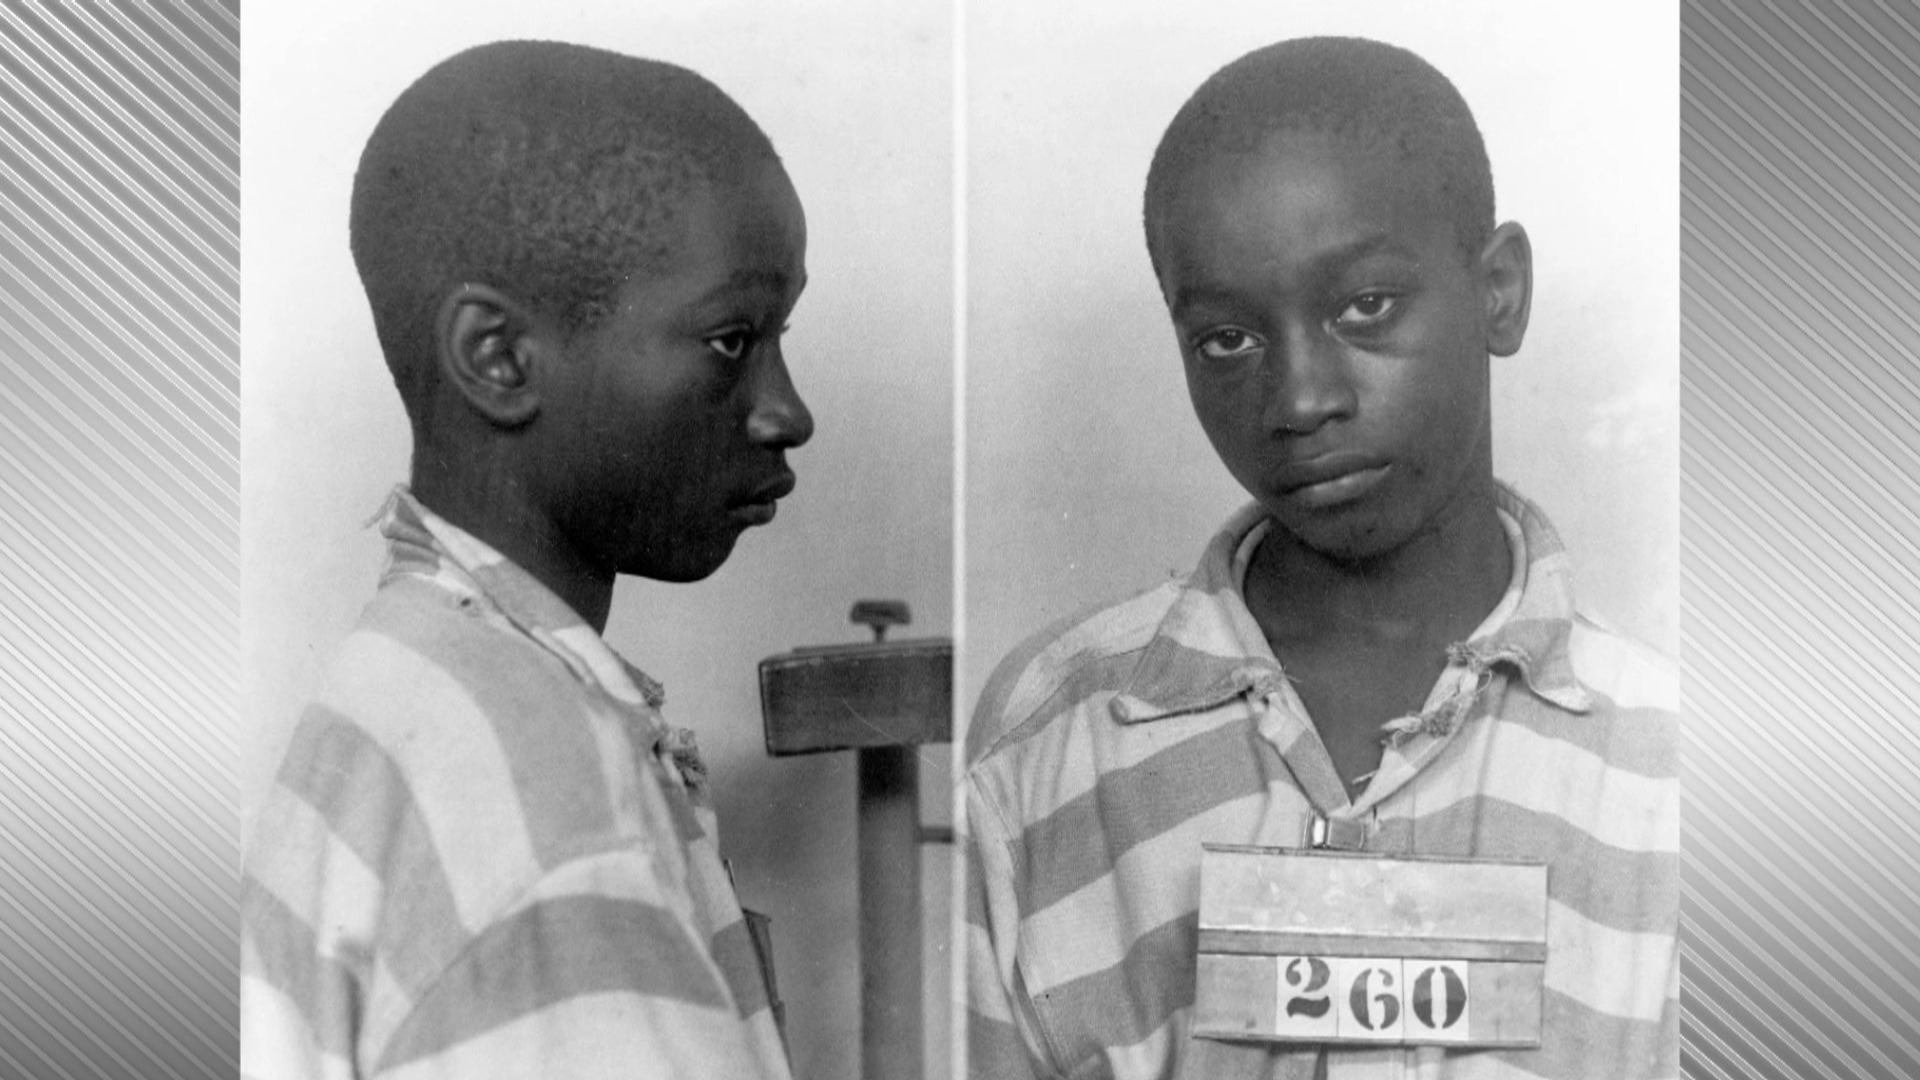 an overview of the case of lionel tate in south florida In a disturbing case out of florida that has loud parallels to the lionel tate saga from a few years back, a 12-year-old boy may face adult charges and a mandatory sentence of life without parole for fatally beating 17.